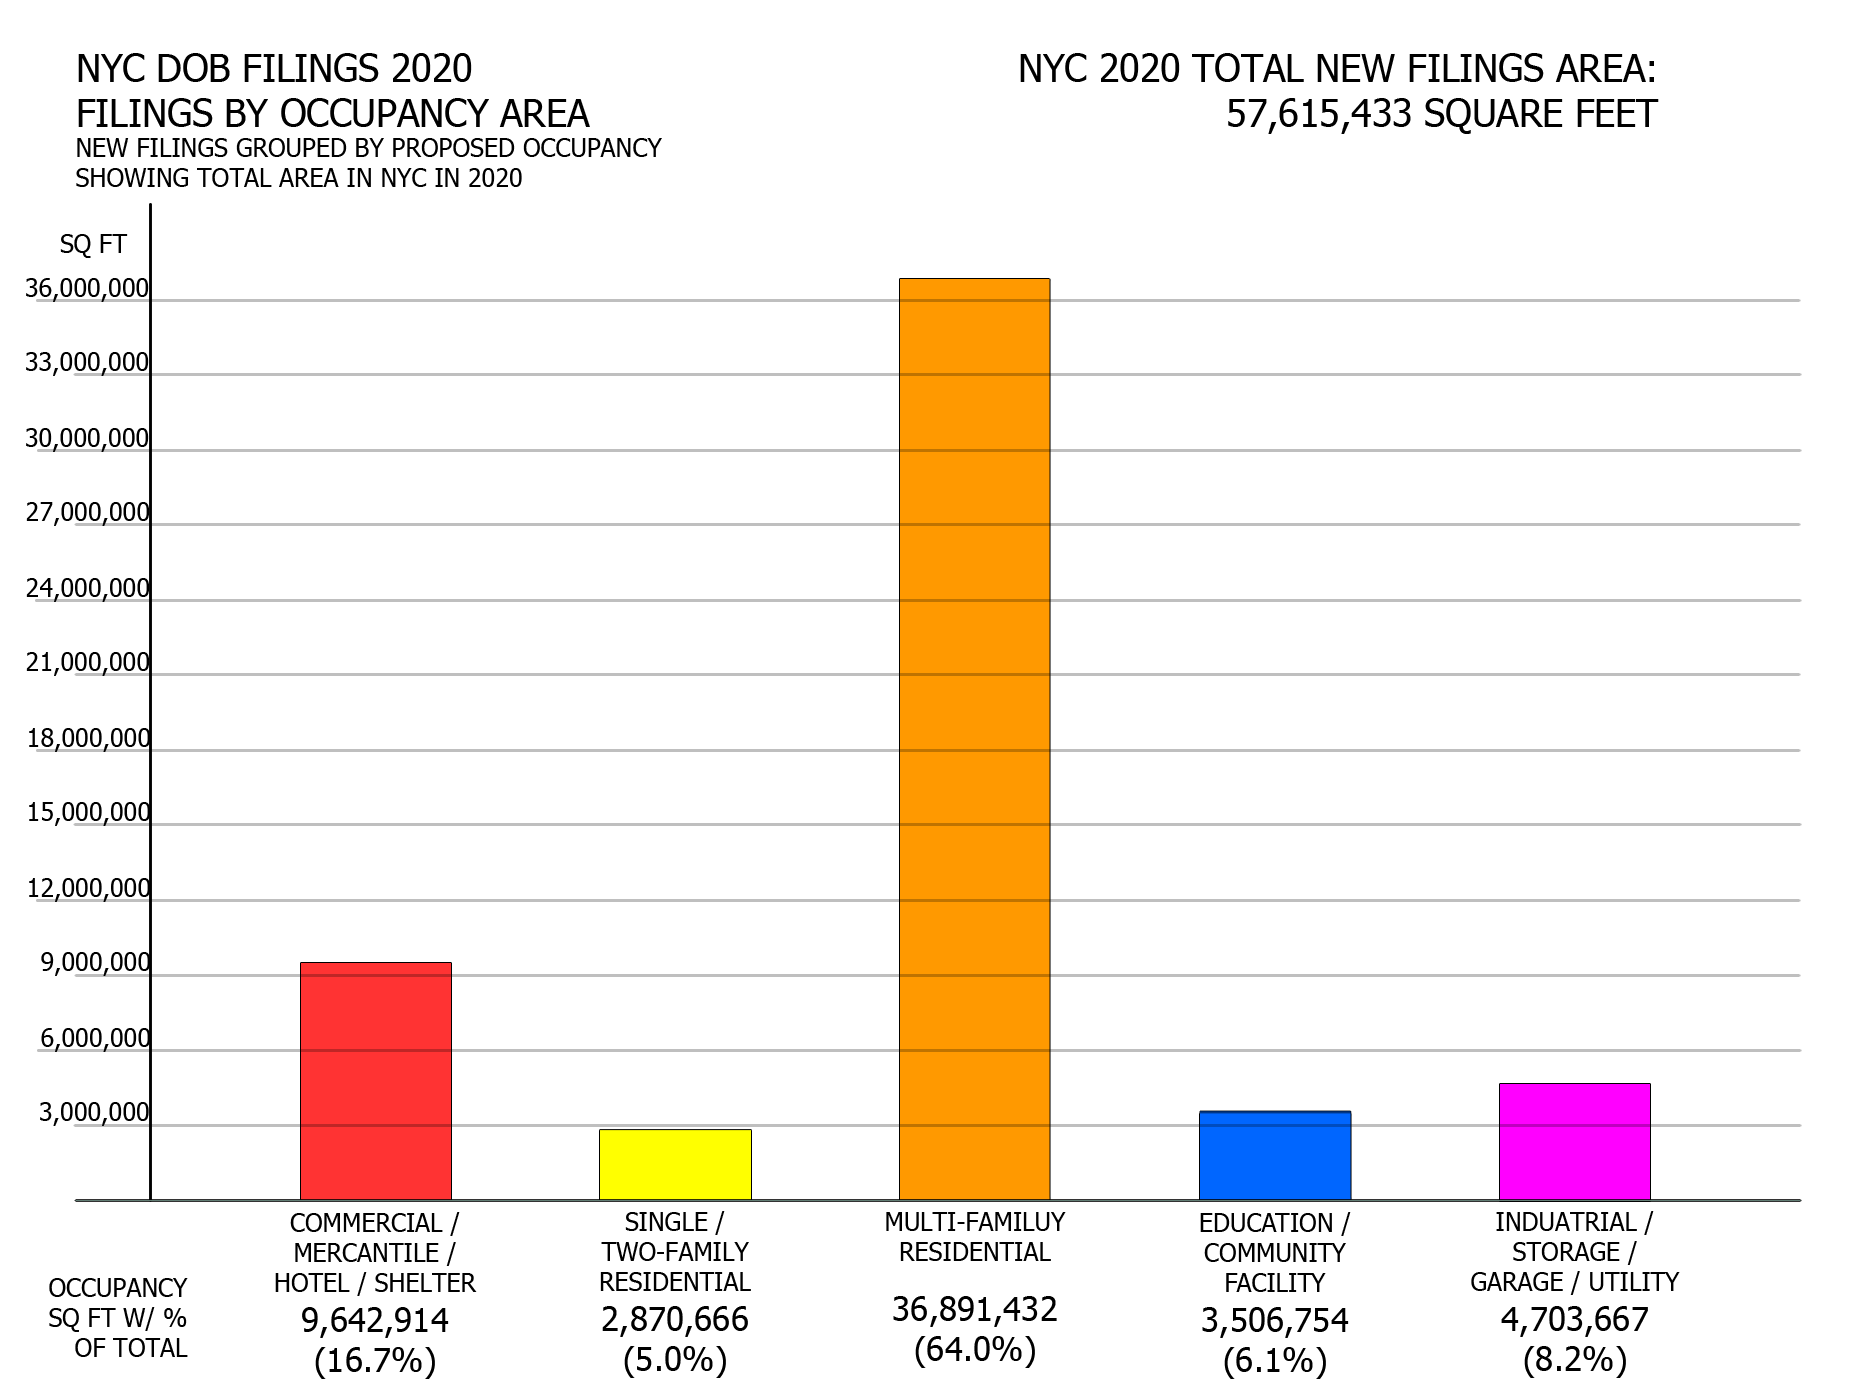 NYC DOB filings in 2020 by occupancy area. Credit: Vitali Ogorodnikov